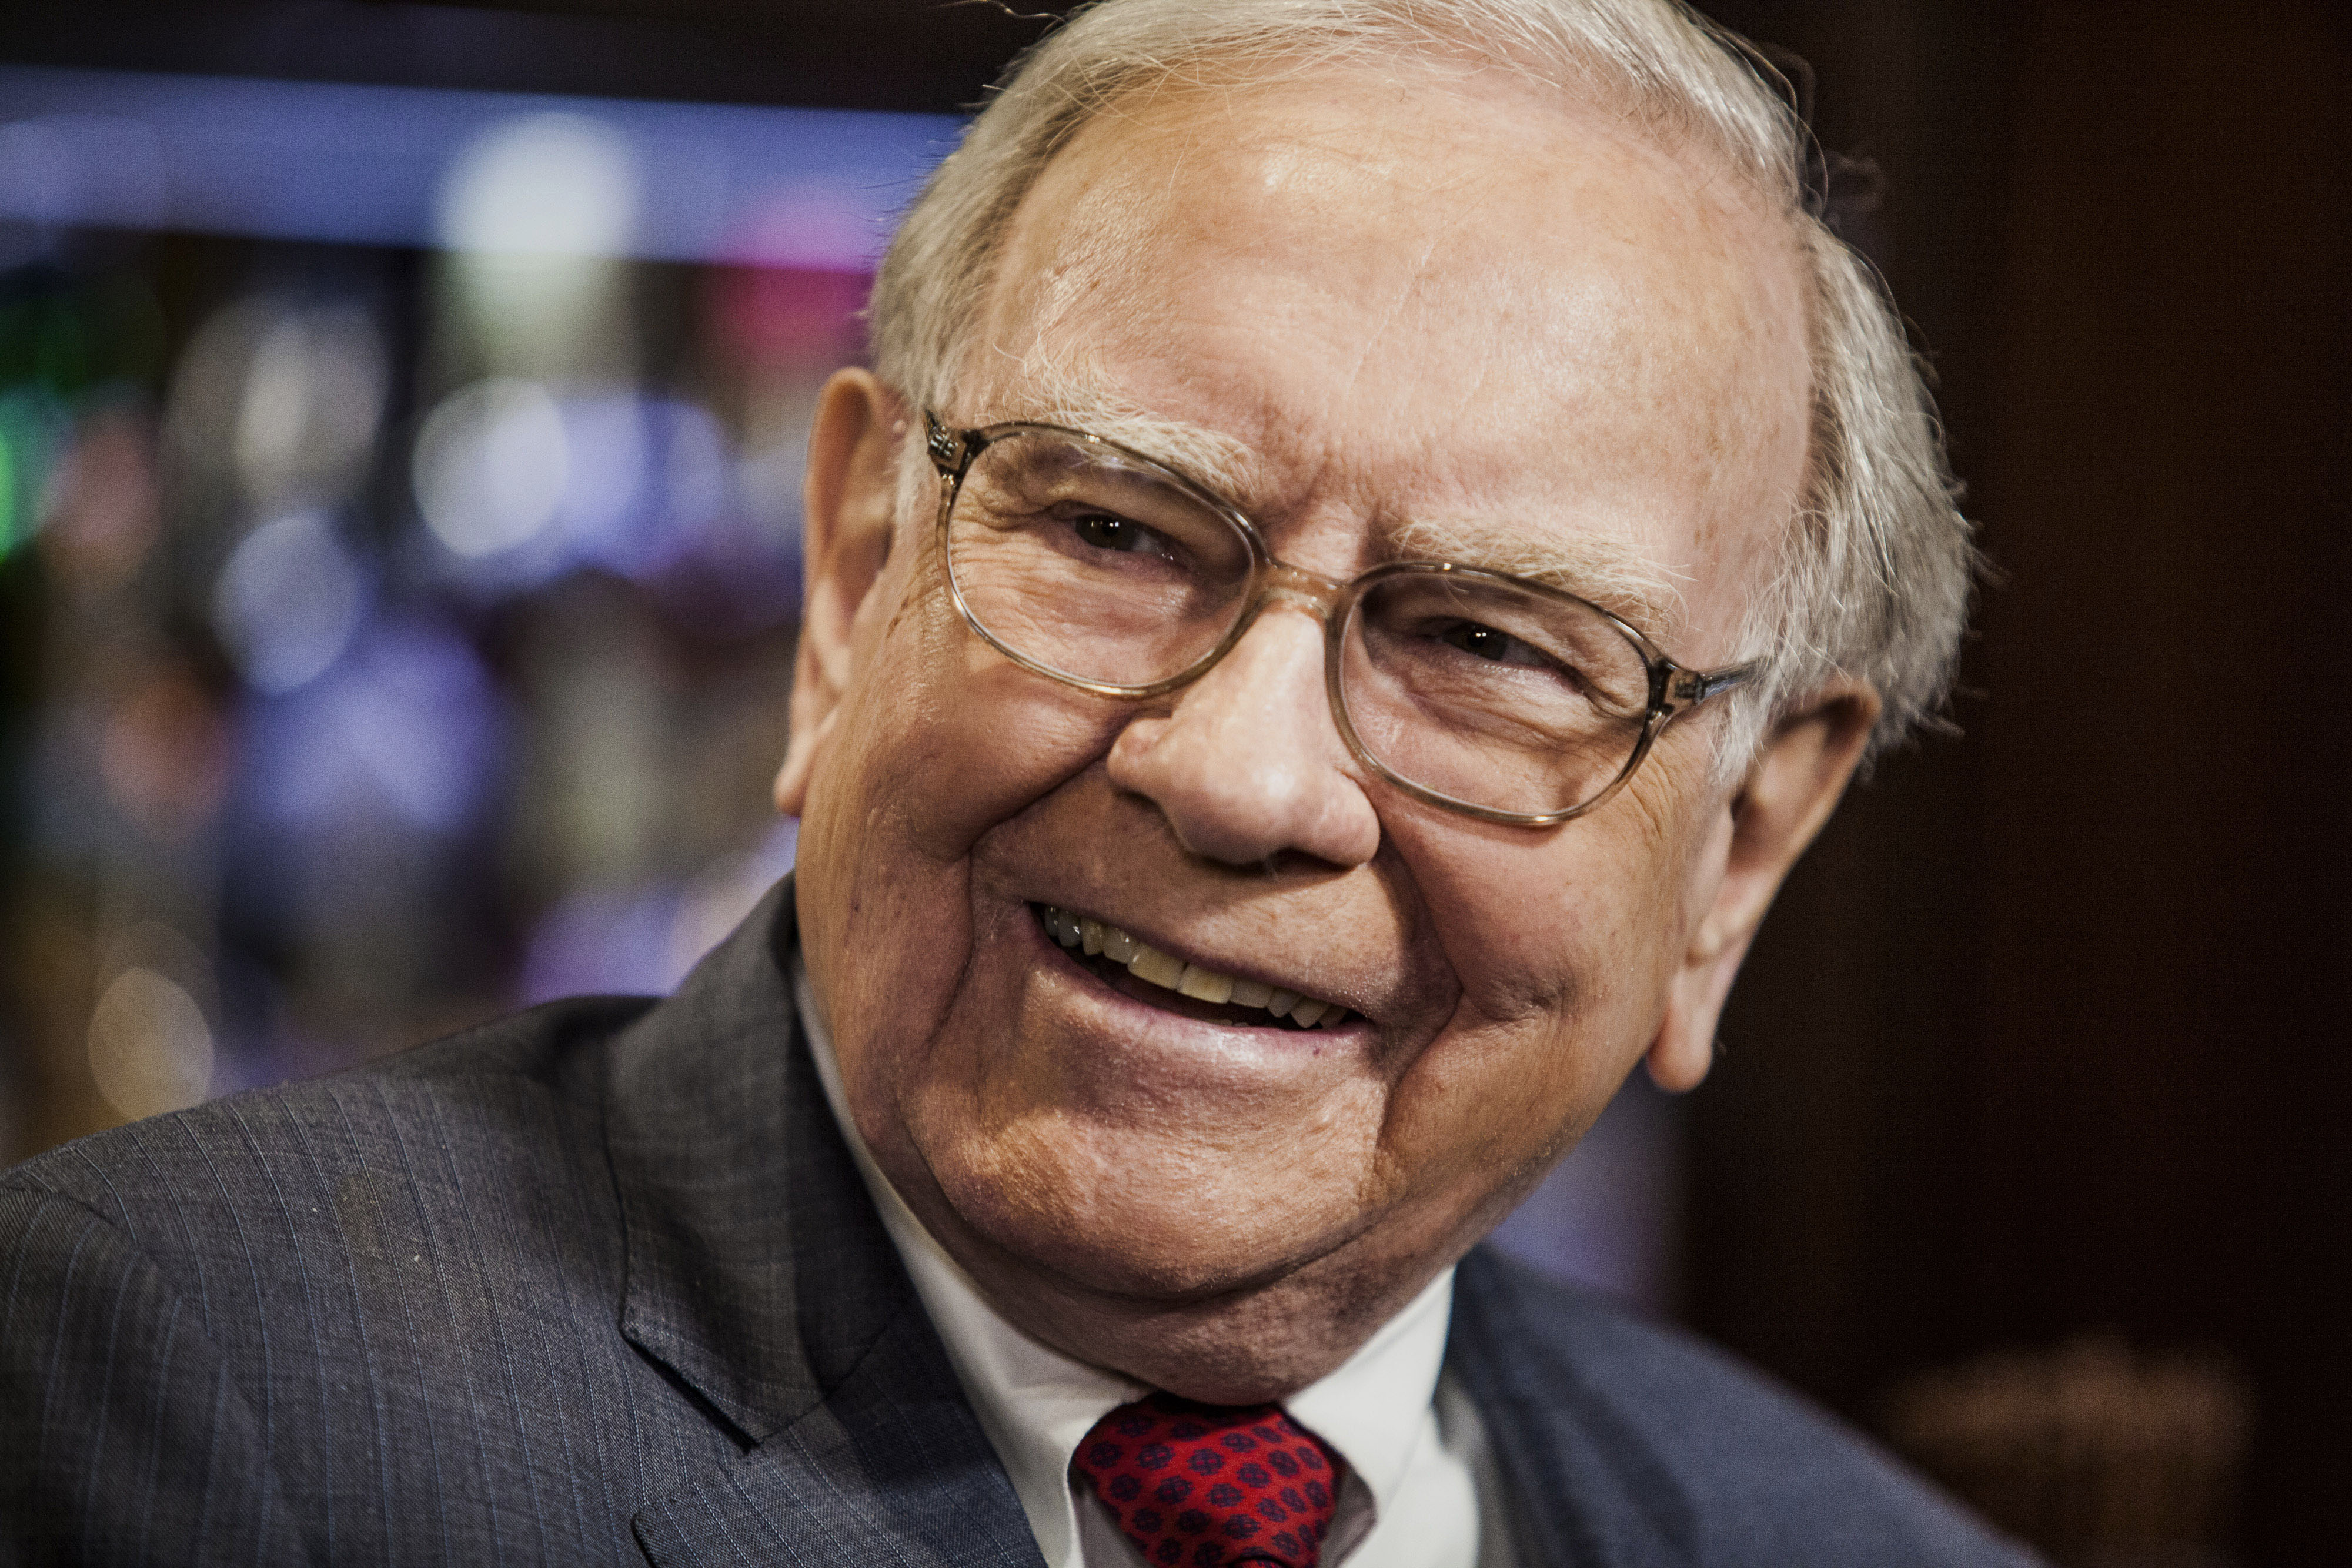 Berkshire Hathaway CEO Warren Buffett is giving away $2.8 billion as part of his annual donation pledge.